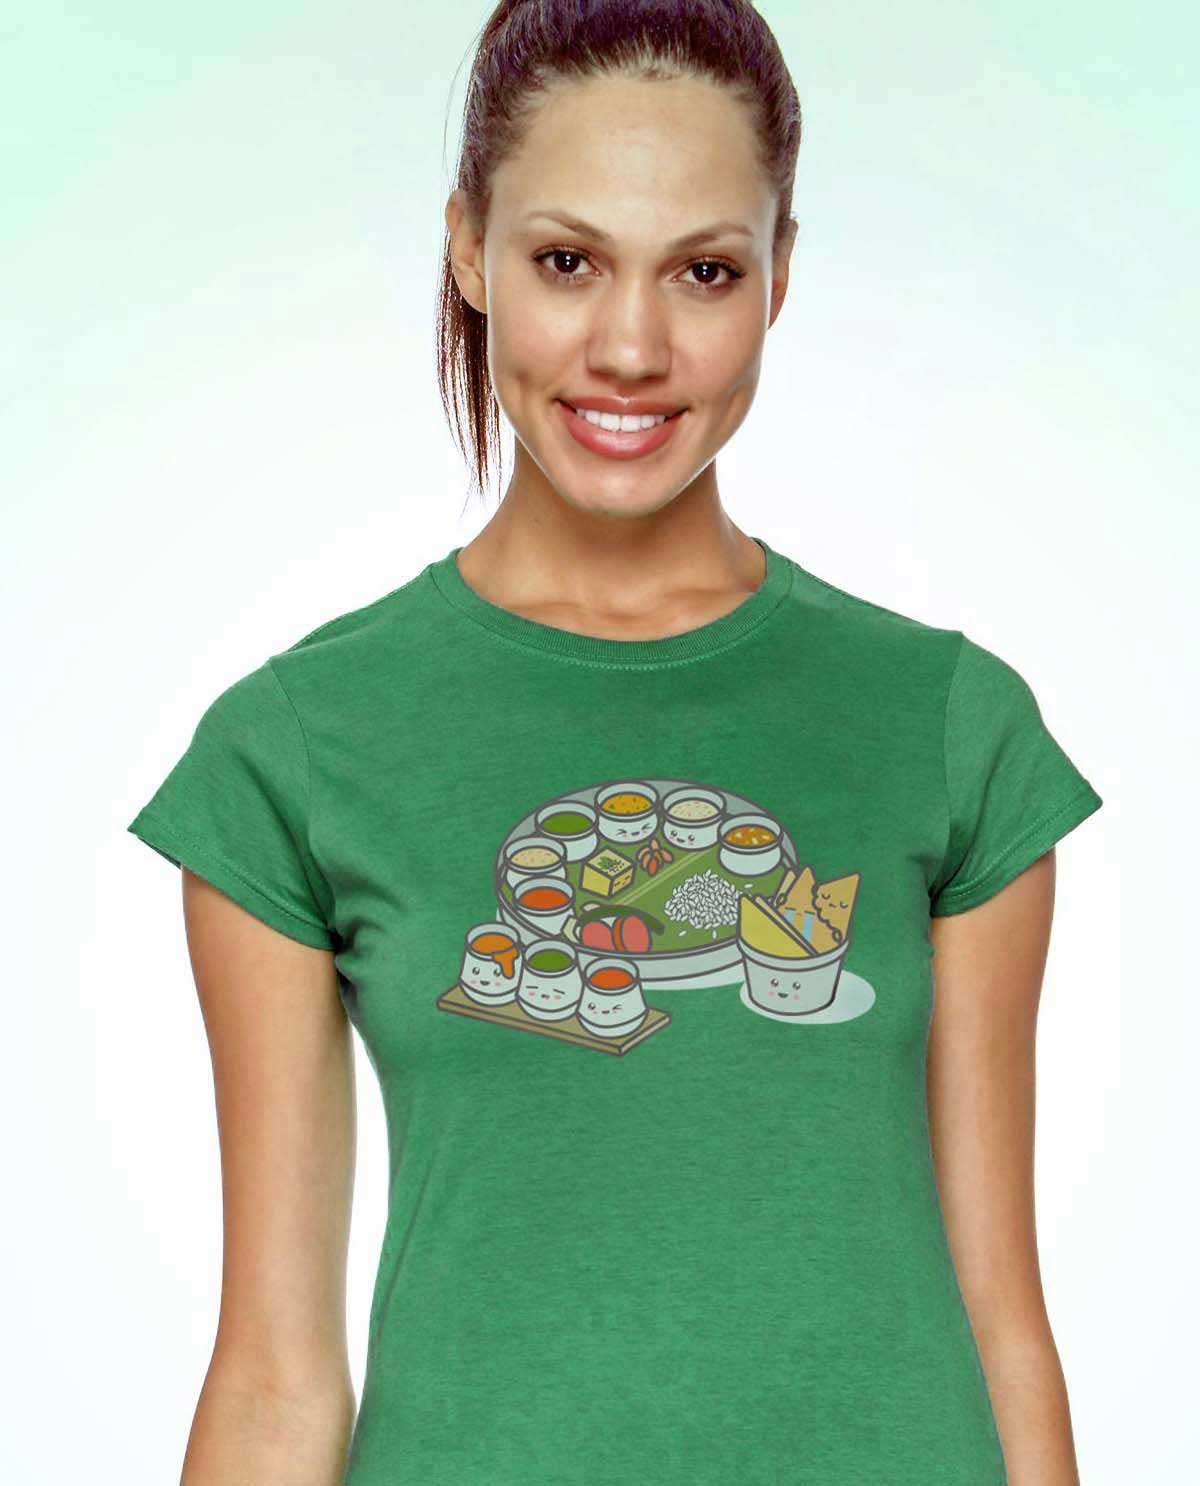 Kawaii Indian Thali food Graphic Design Tshirt printed on green supersoft tshirt for women.